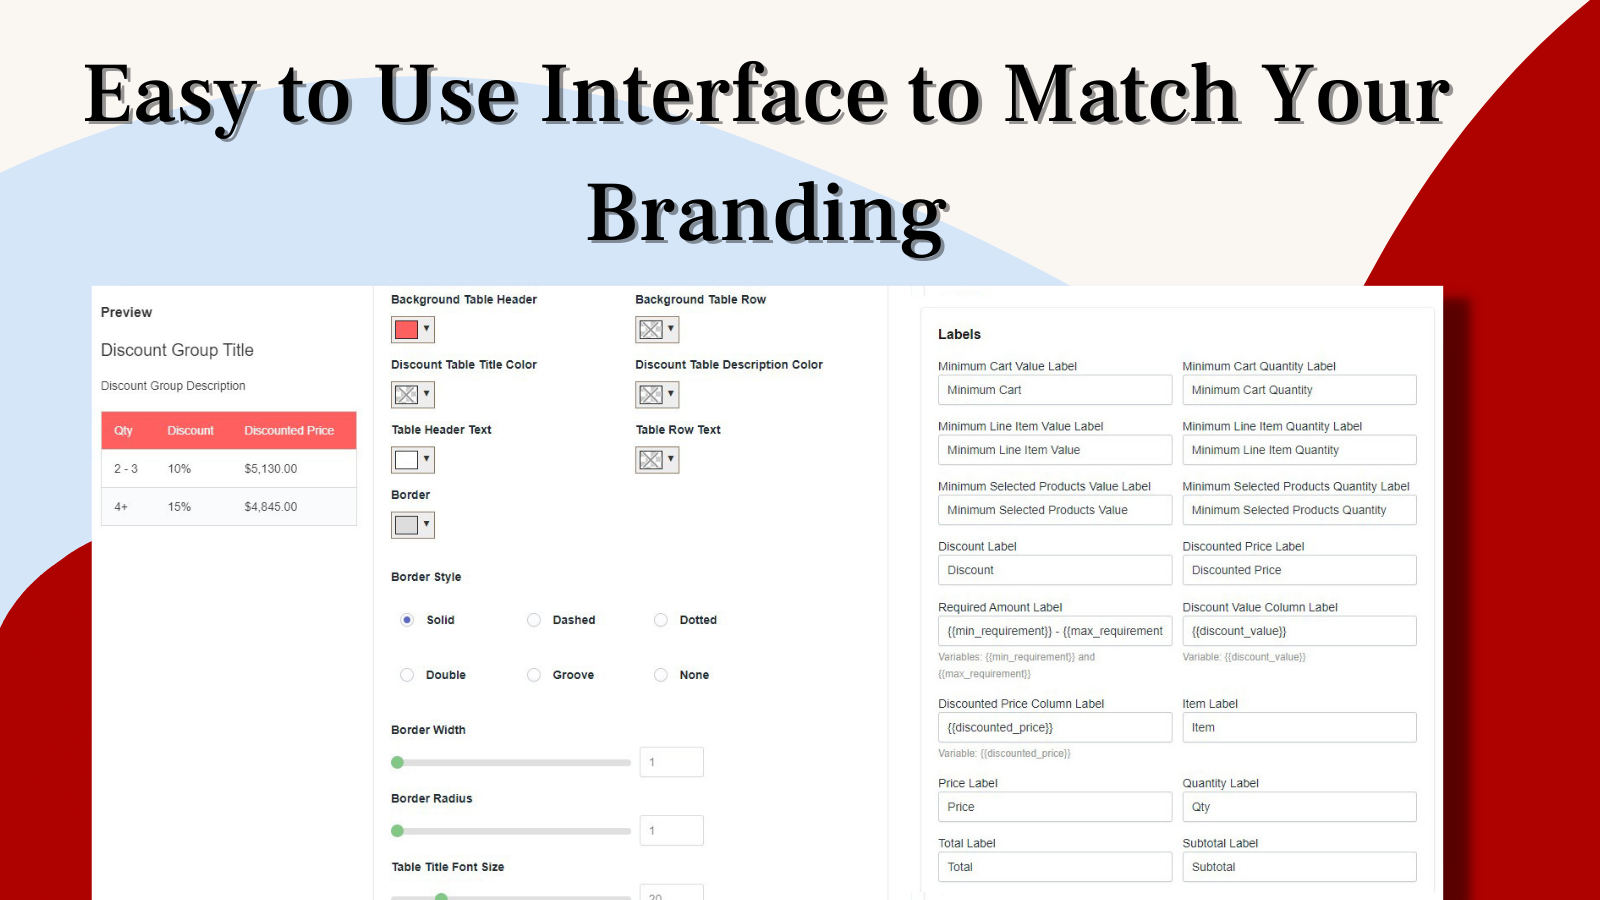 Easy to use interface to match your brand guidelines